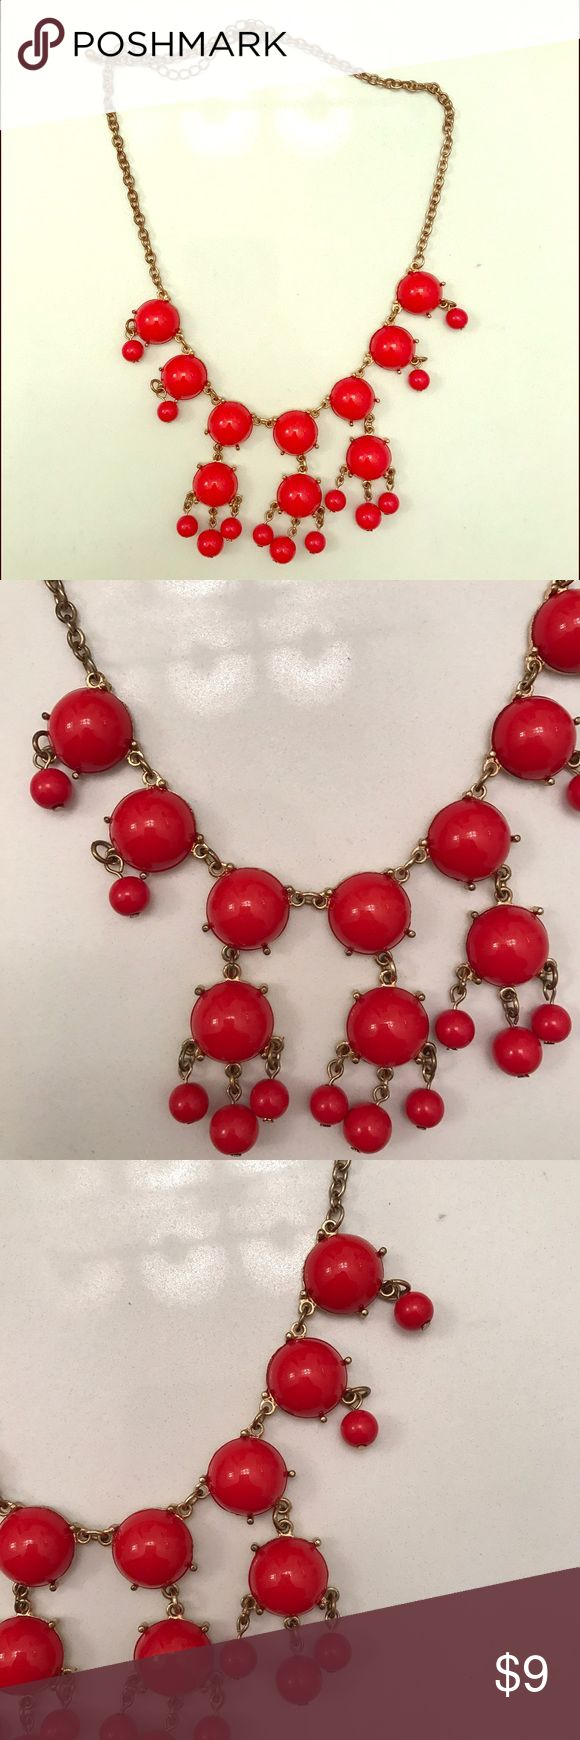 Red Bubble Necklace Red Bubble Necklace with gold adjustable chain, only worn once Charming Charlie Jewelry Necklaces